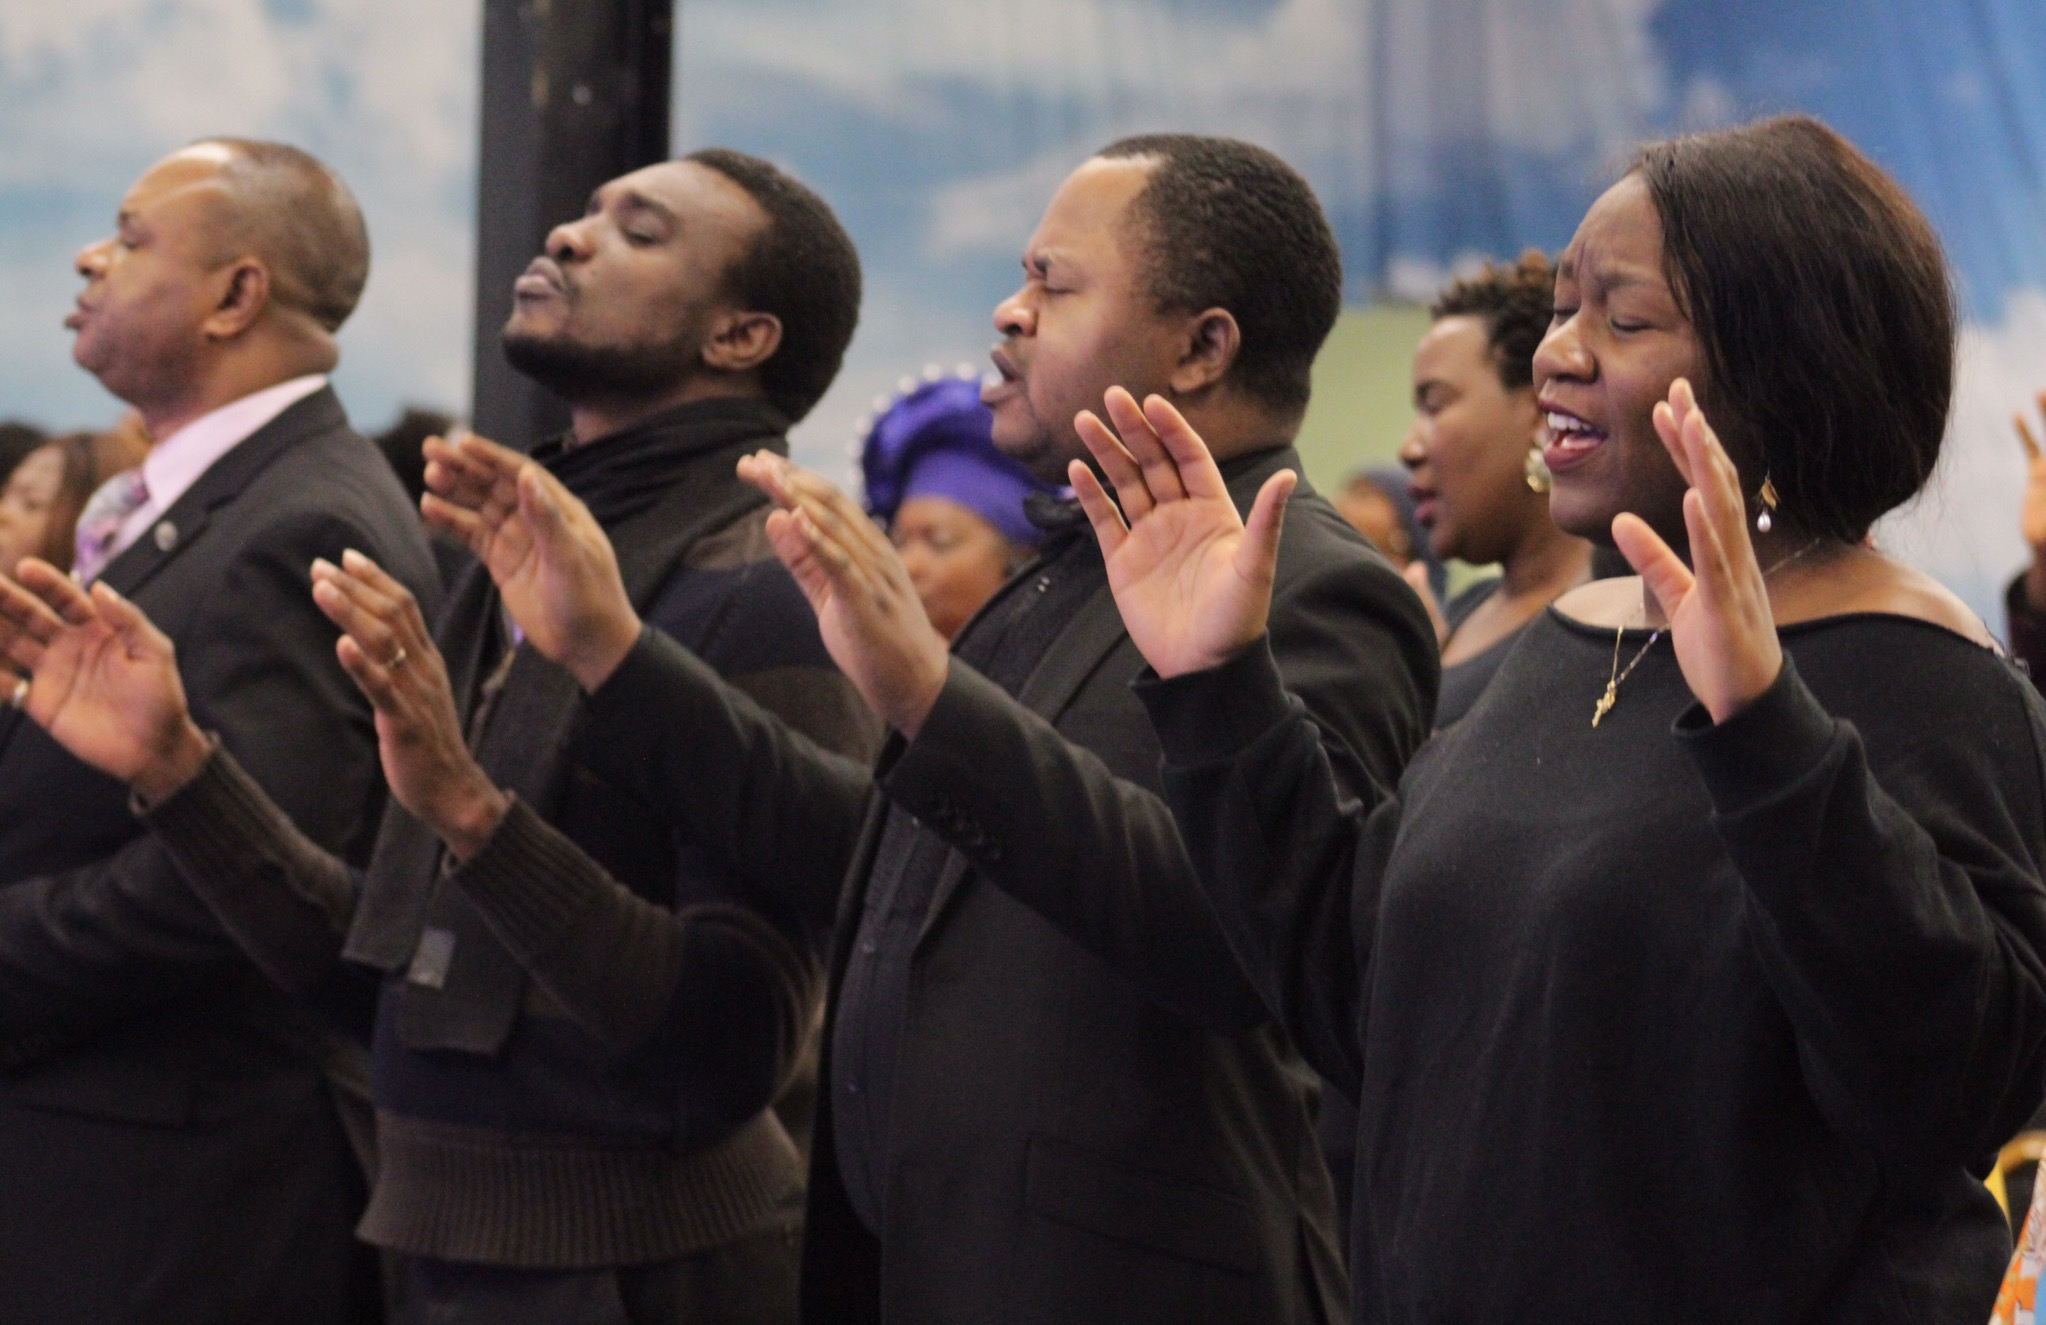 Awesome Sunday Service.The glory of